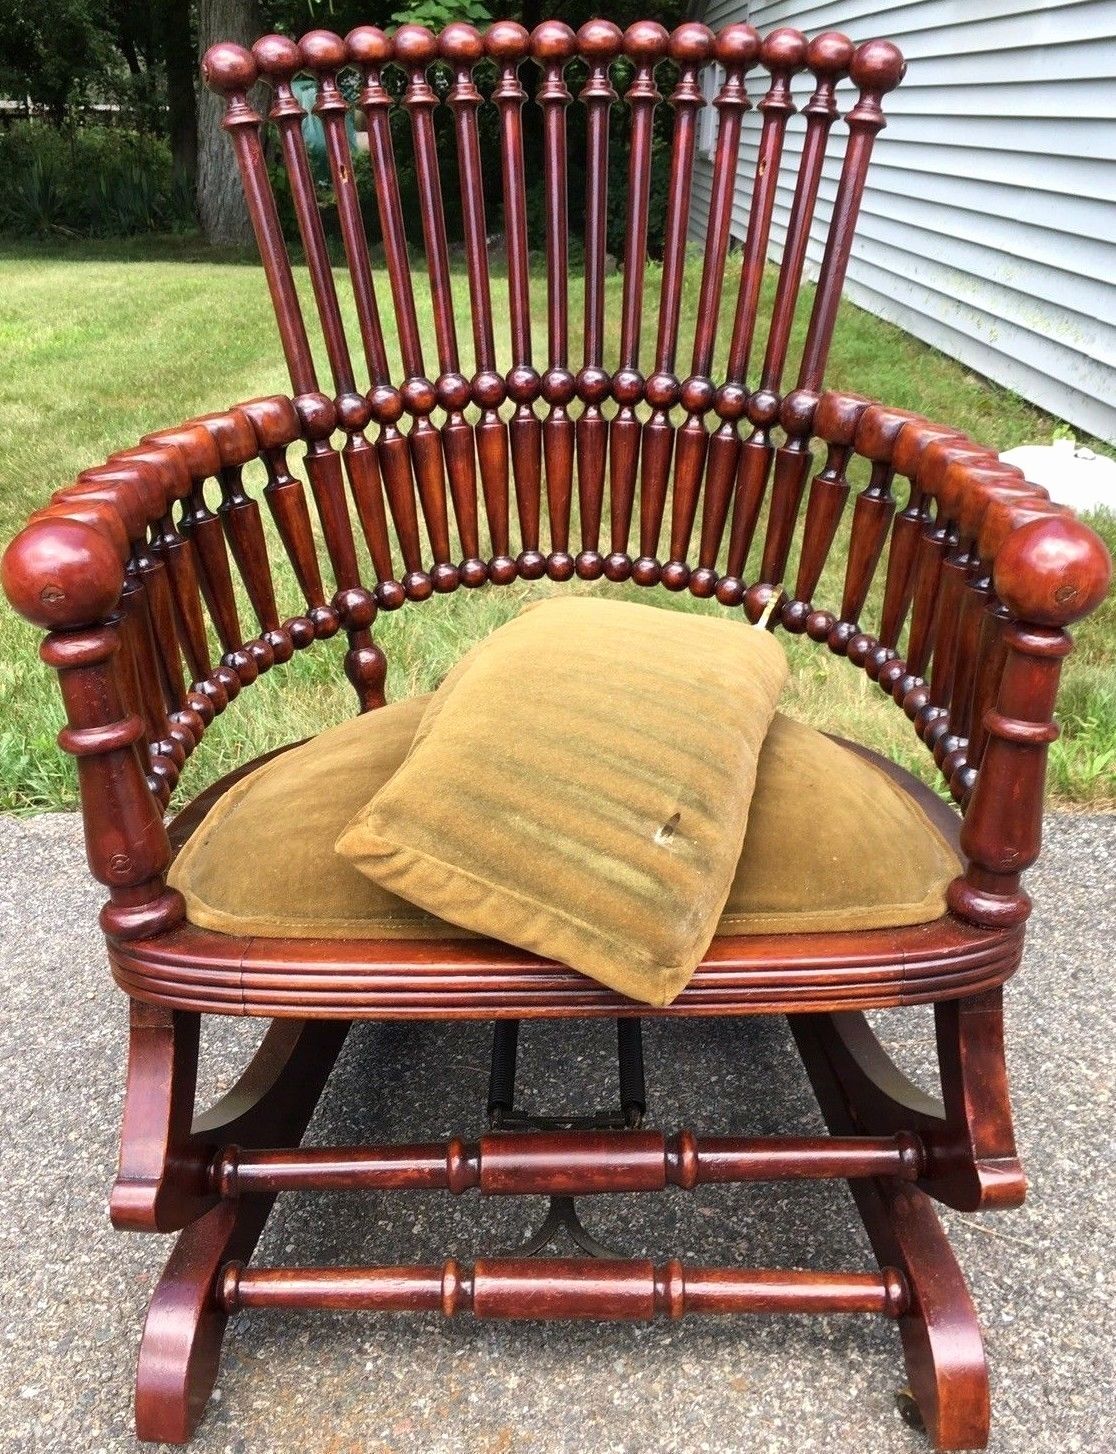 Inspiration about 20 Best Of Old Fashioned Rocking Chair | Gettwistart Intended For Old Fashioned Rocking Chairs (#3 of 15)